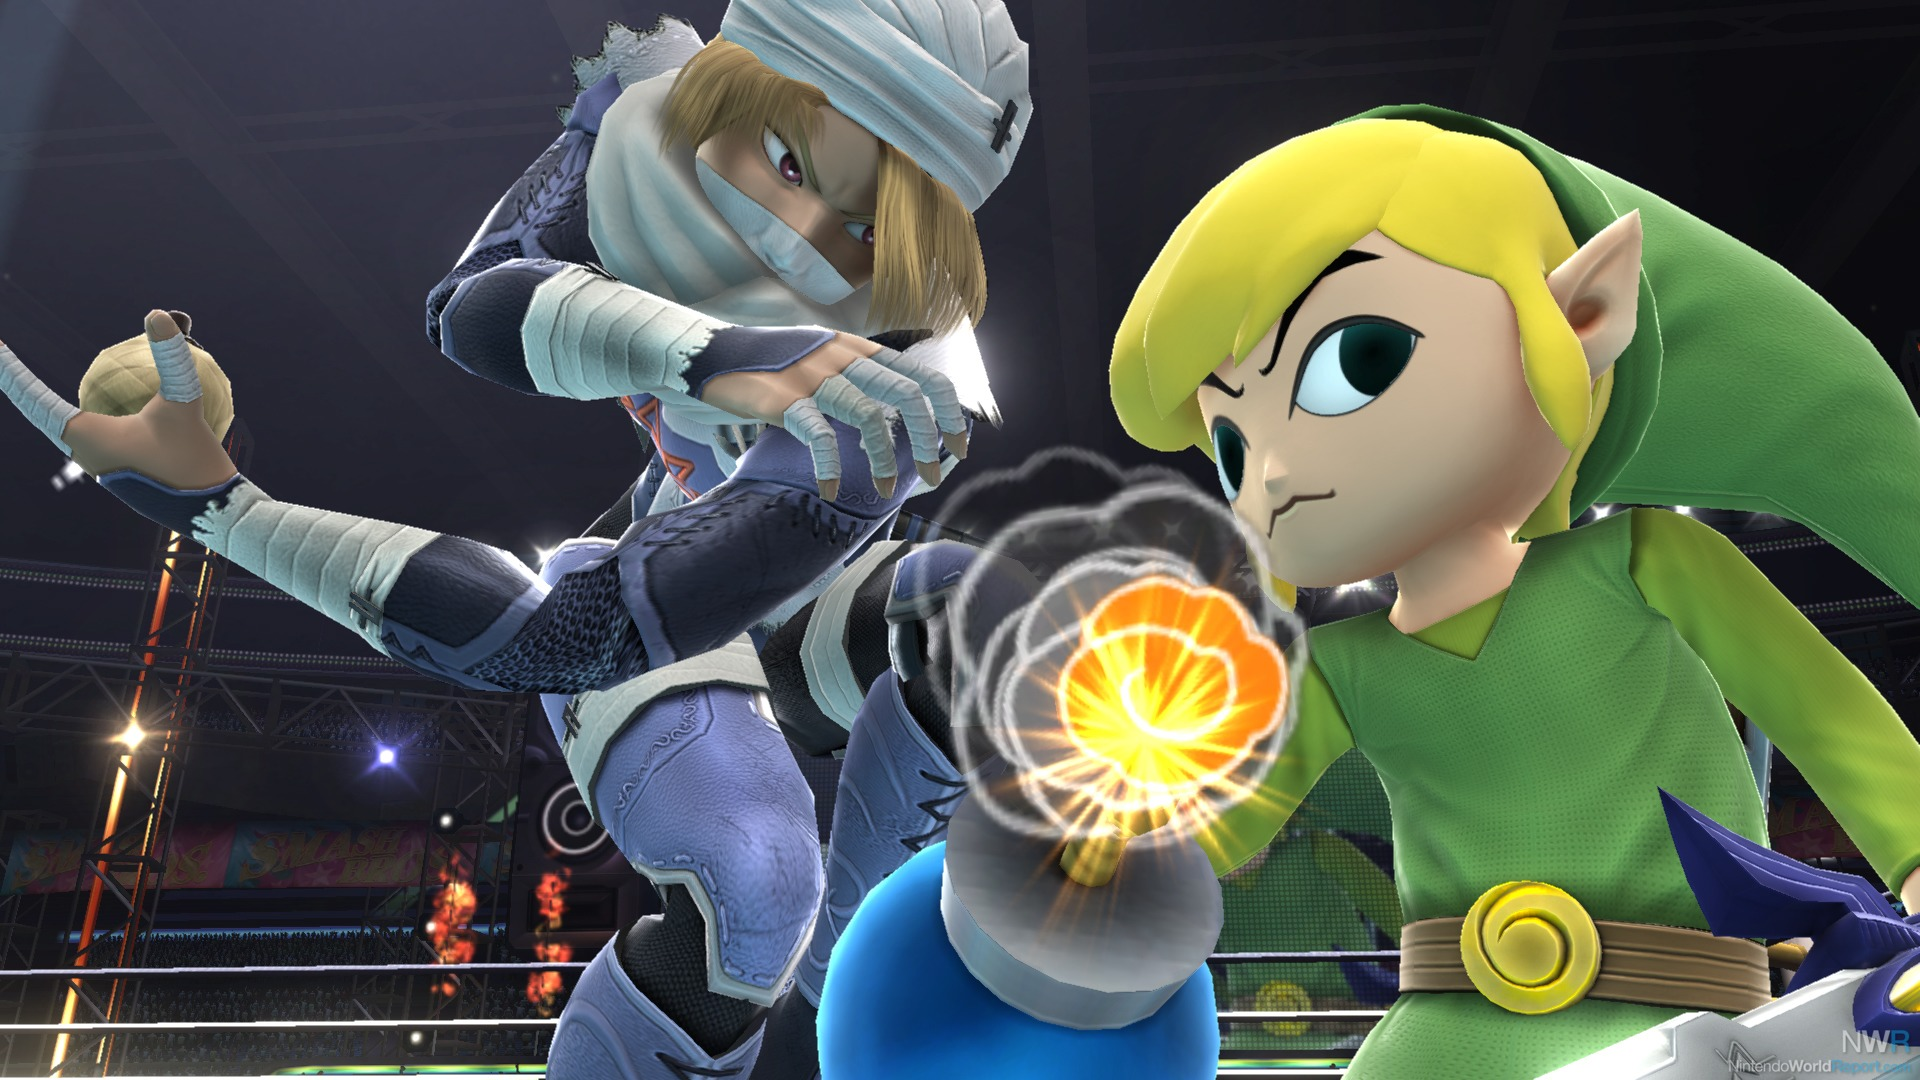 Super smash bros is nintendo 39 s fastest selling wii u game in us news nintendo world report - Console wii u super smash bros ...